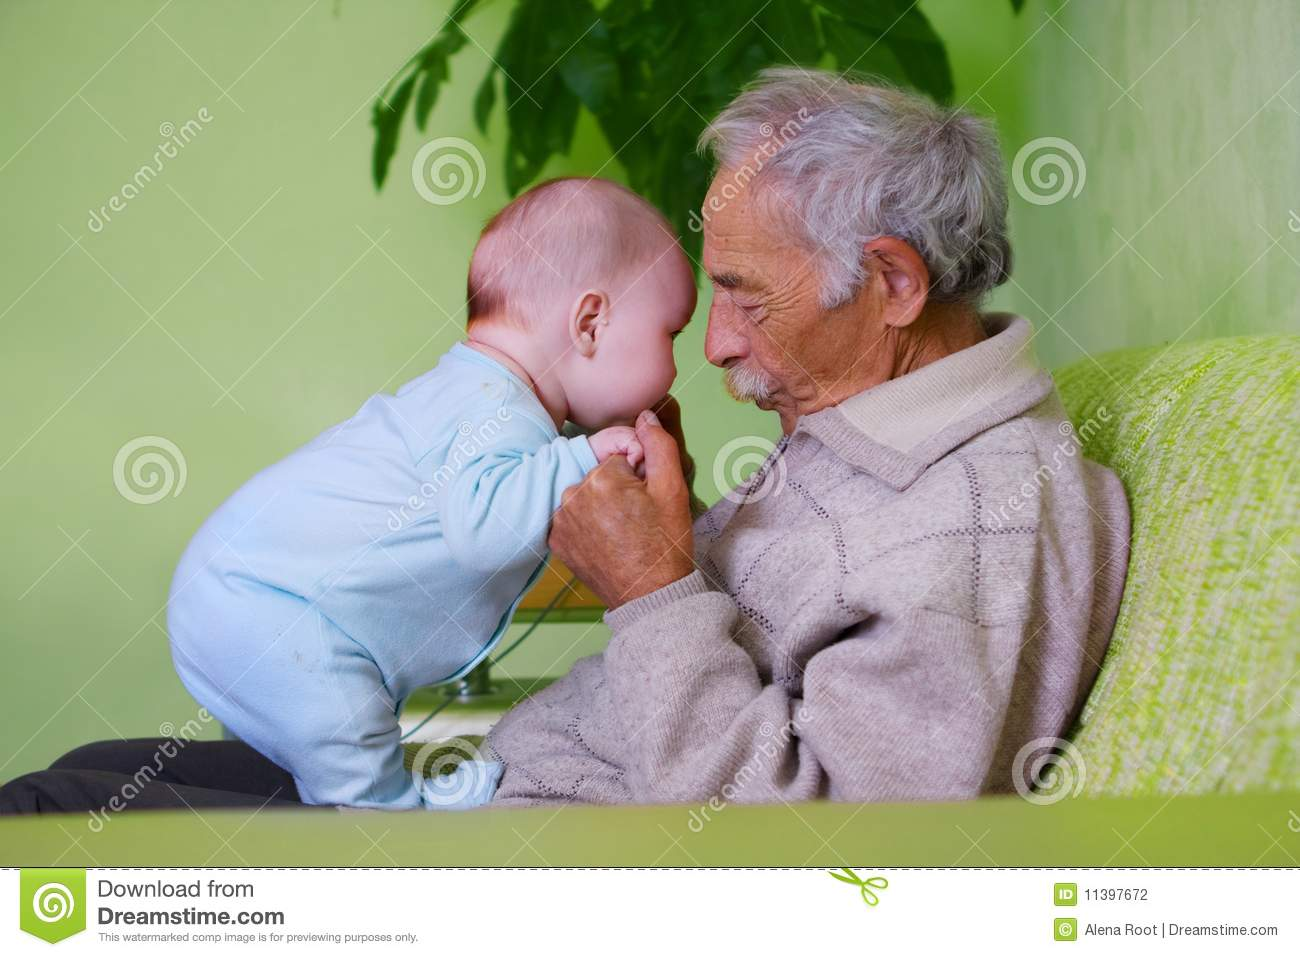 baby with grandpa stock photography image 11397672 clip art daisy flowers free clip art daisy duck